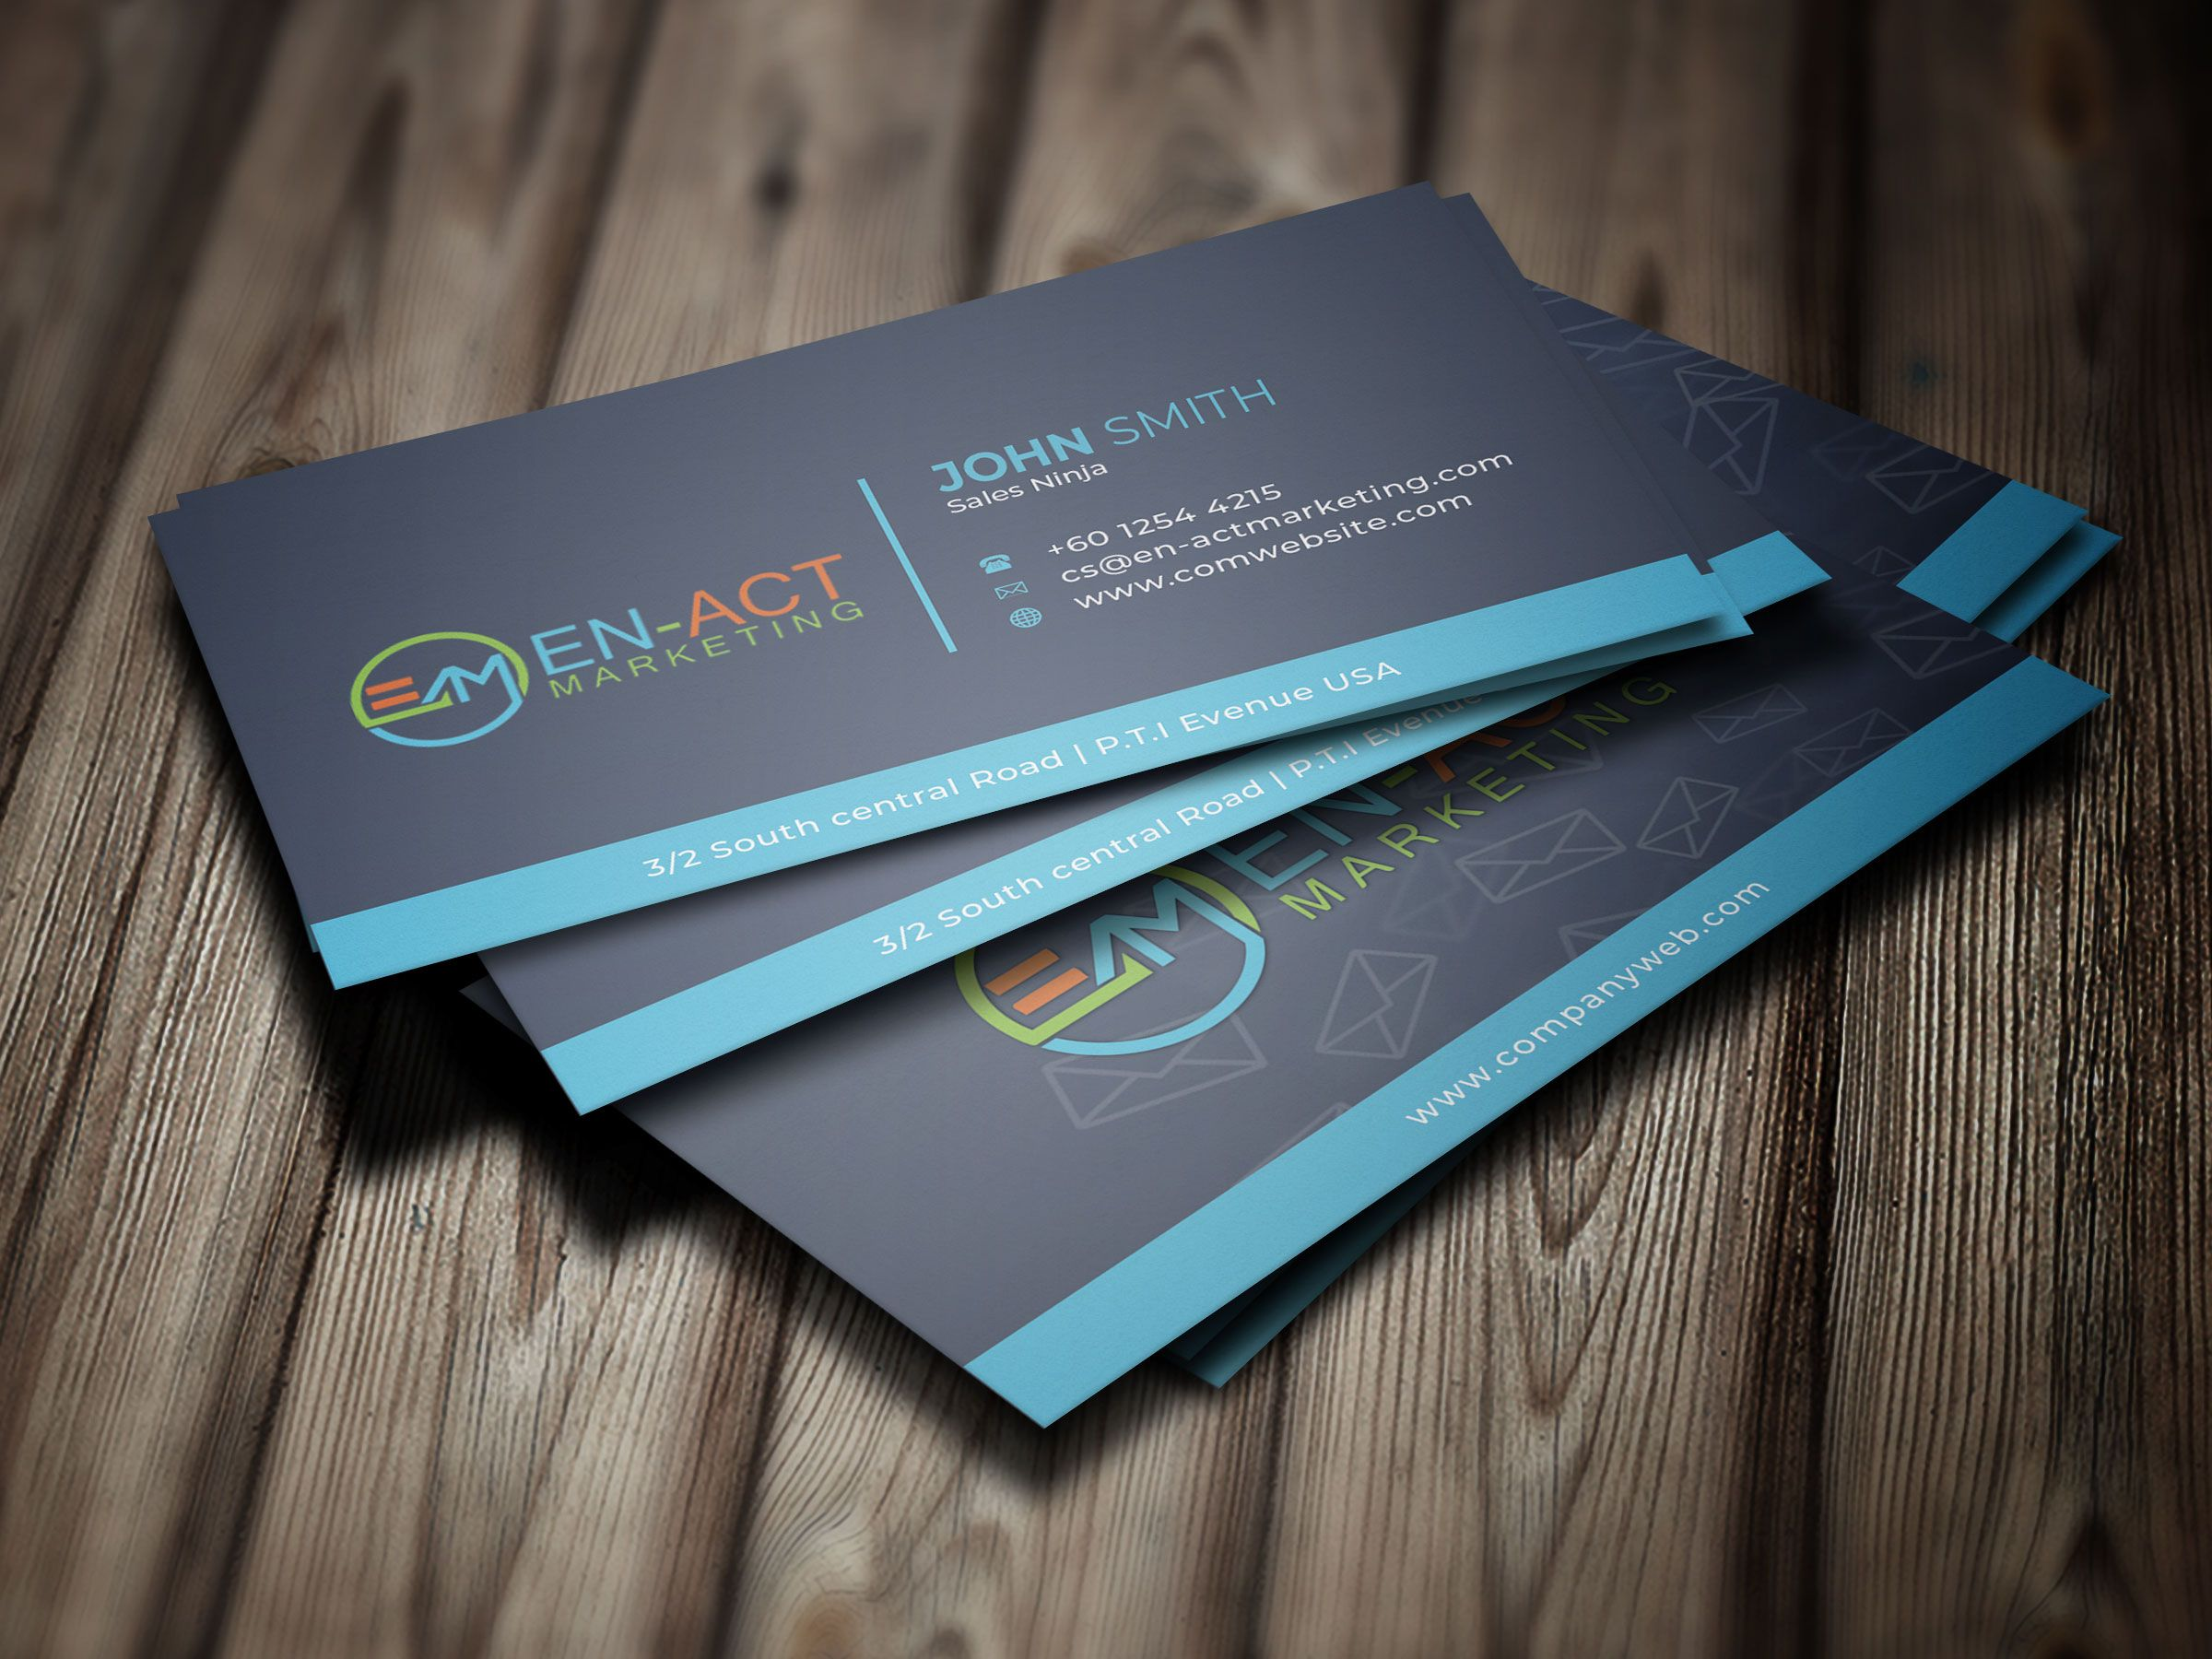 Design Pack I Will Design 4 Professional Business Card Concept Within 24 Hour For 5 On Fiverr Com Professional Business Cards Modern Business Cards Business Card Design